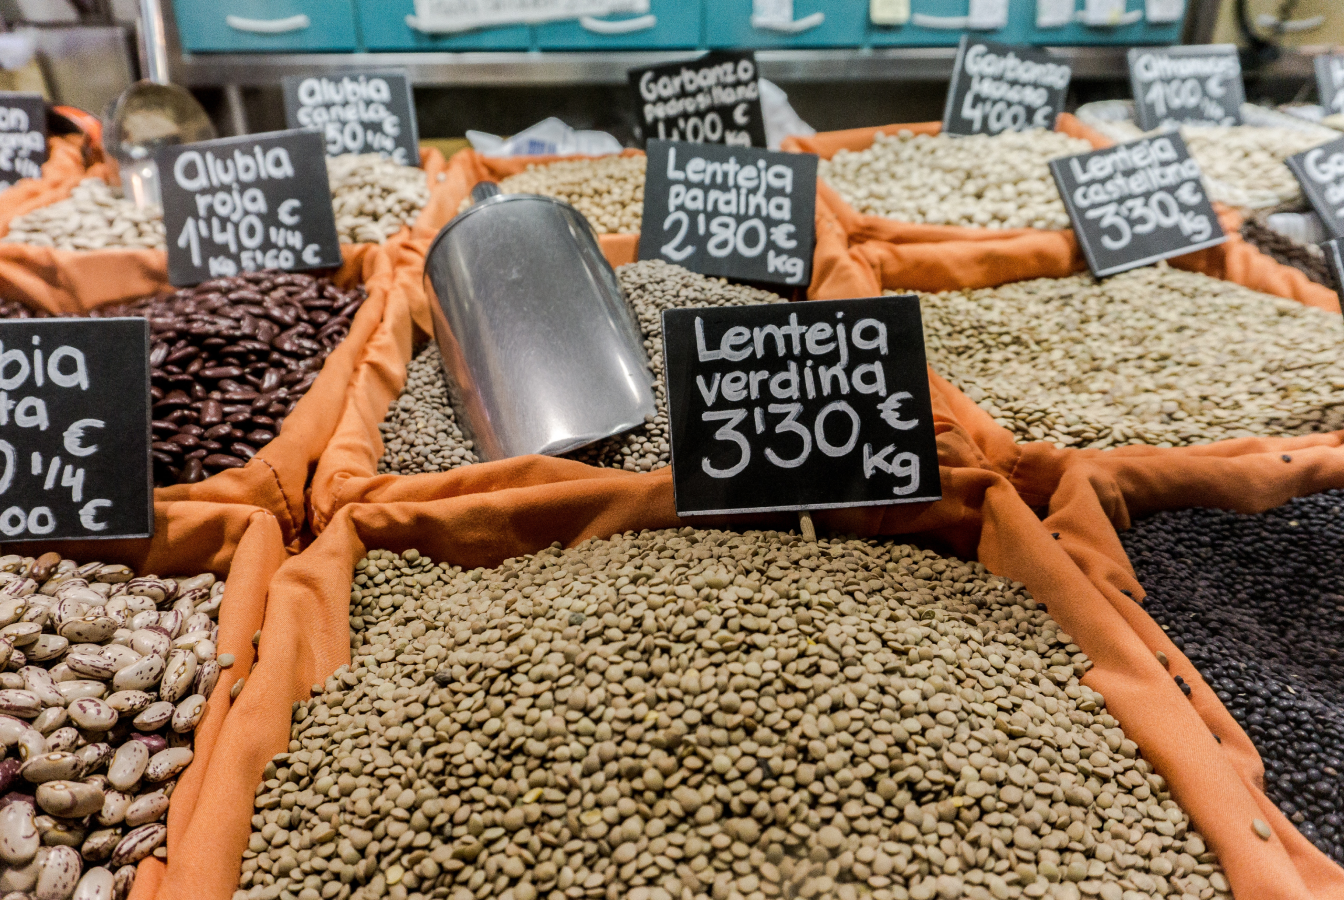 Wholesale bins of assorted beans and legumes